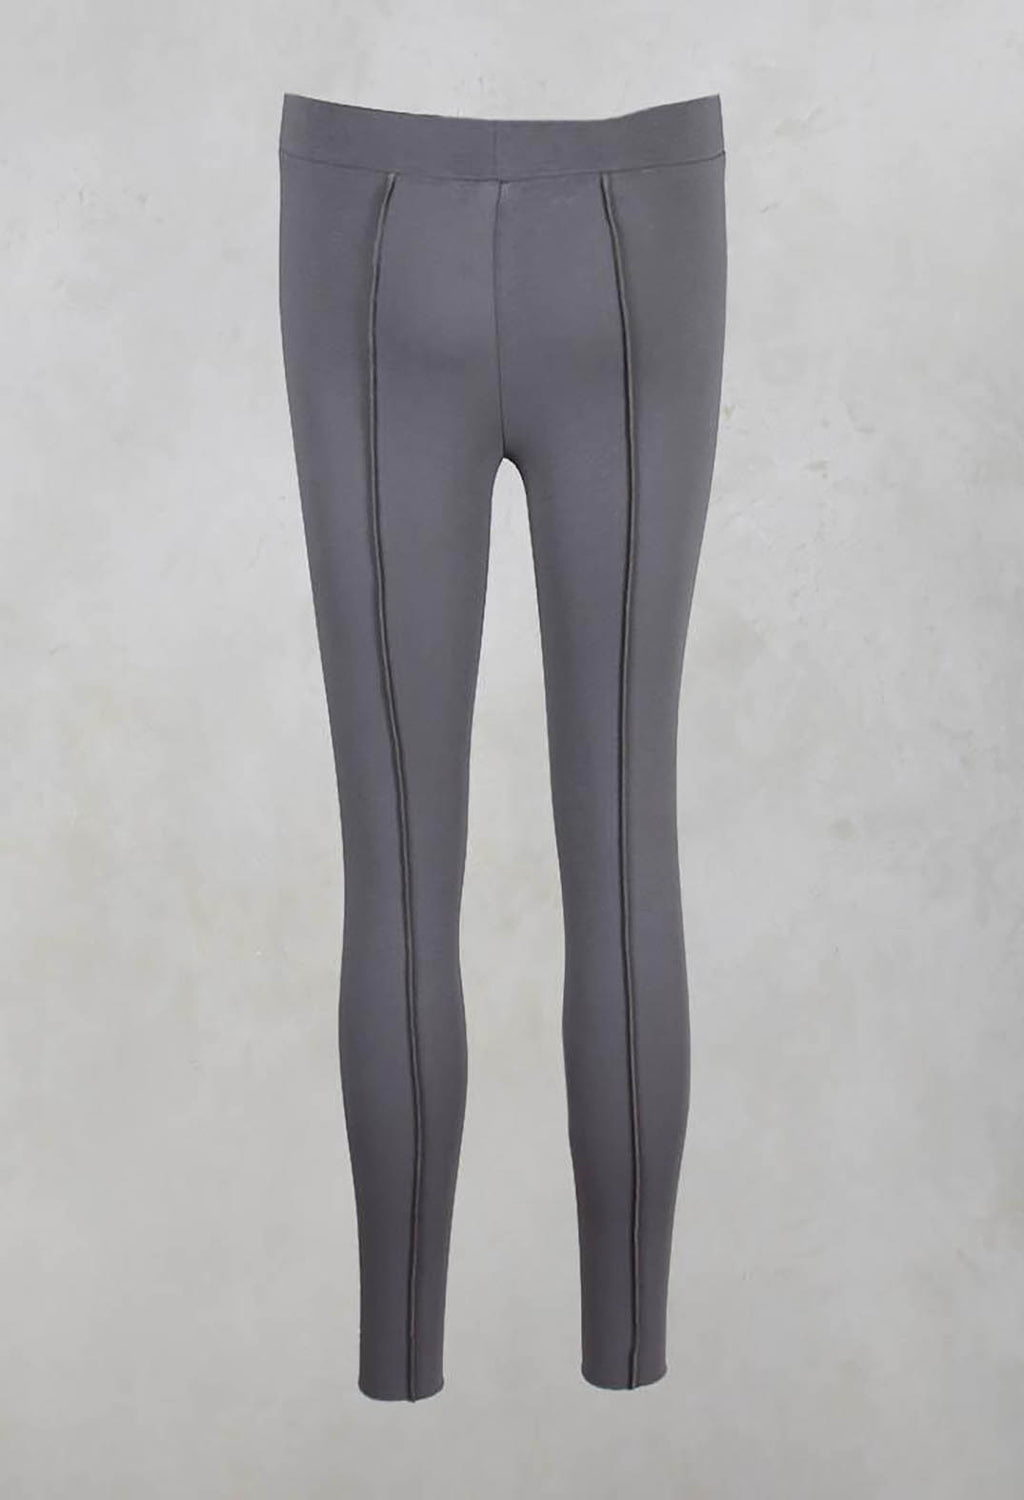 Leggings in Light Grey